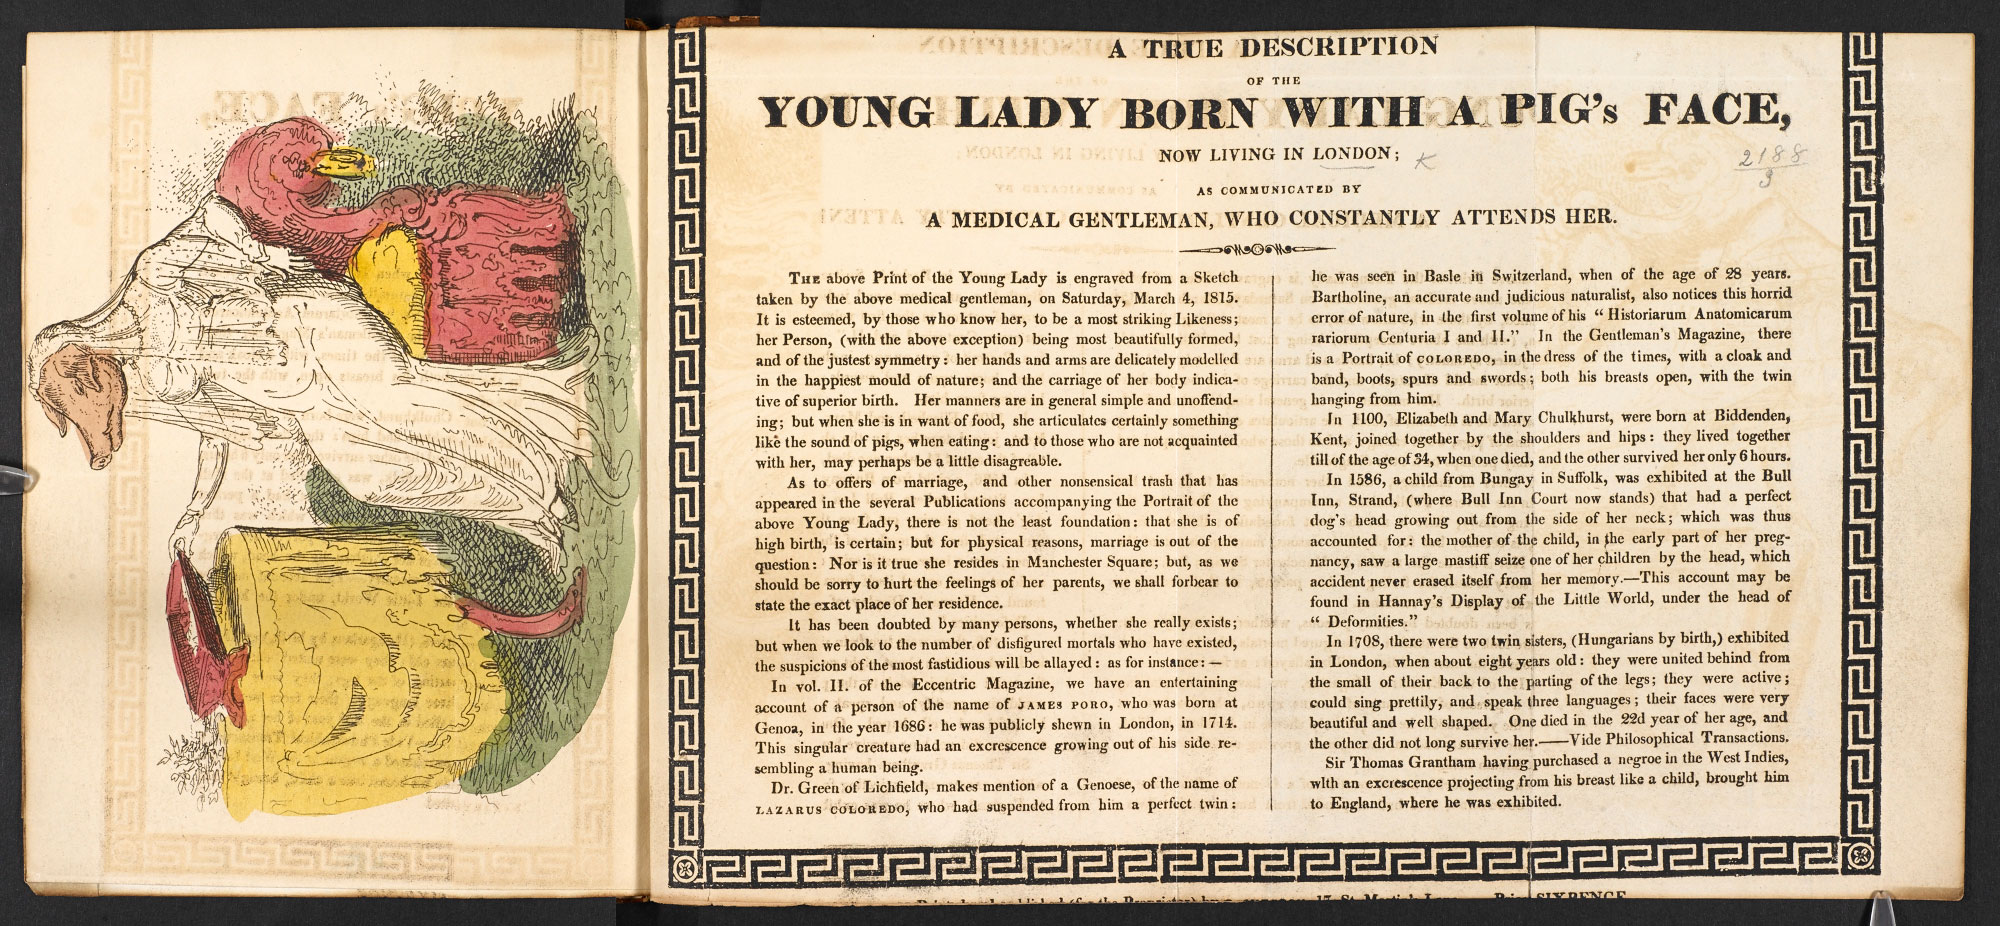 Broadside on the 'Young Lady Born with a Pig's Face'